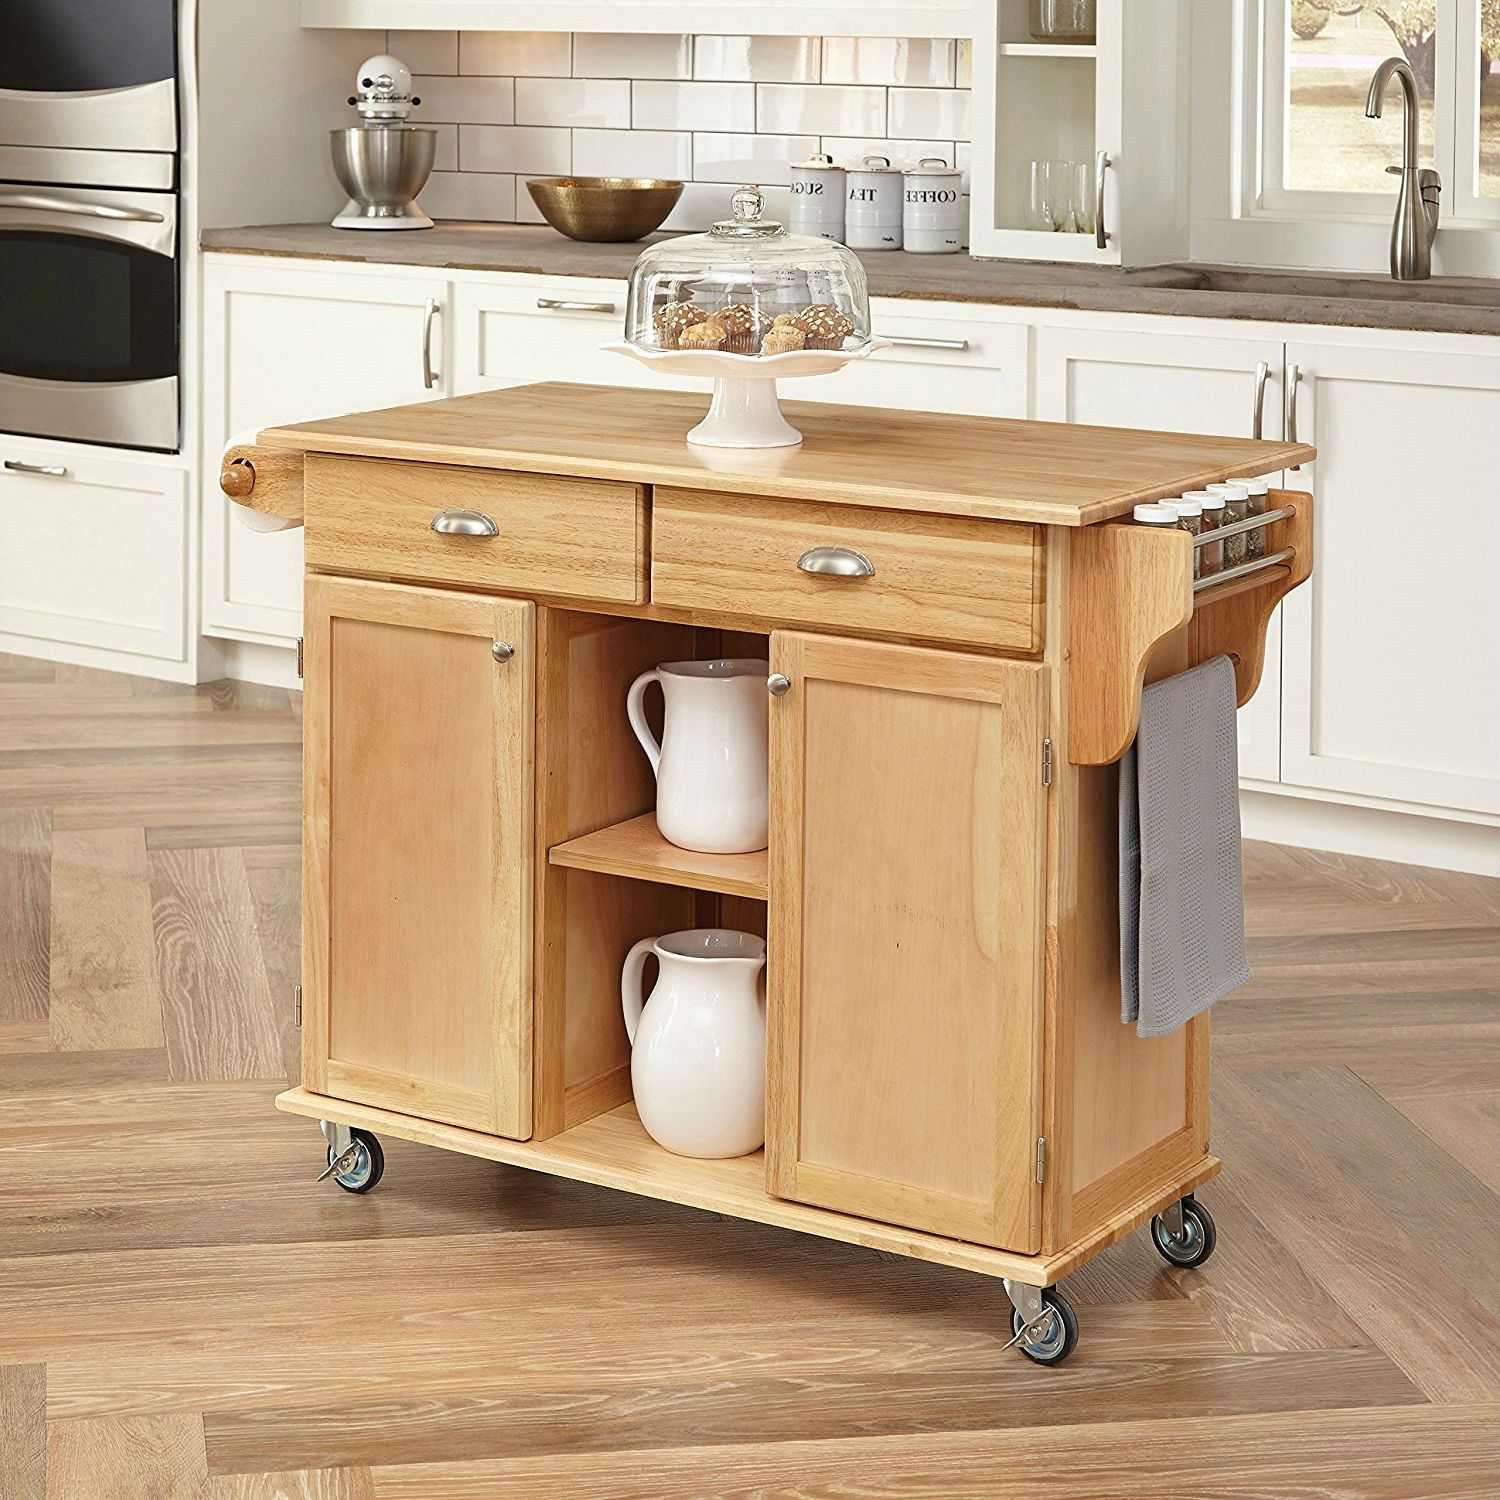 Natural Wood Finish Kitchen Island Cart With Locking Casters Adorable Kitchen Island On Casters 2018